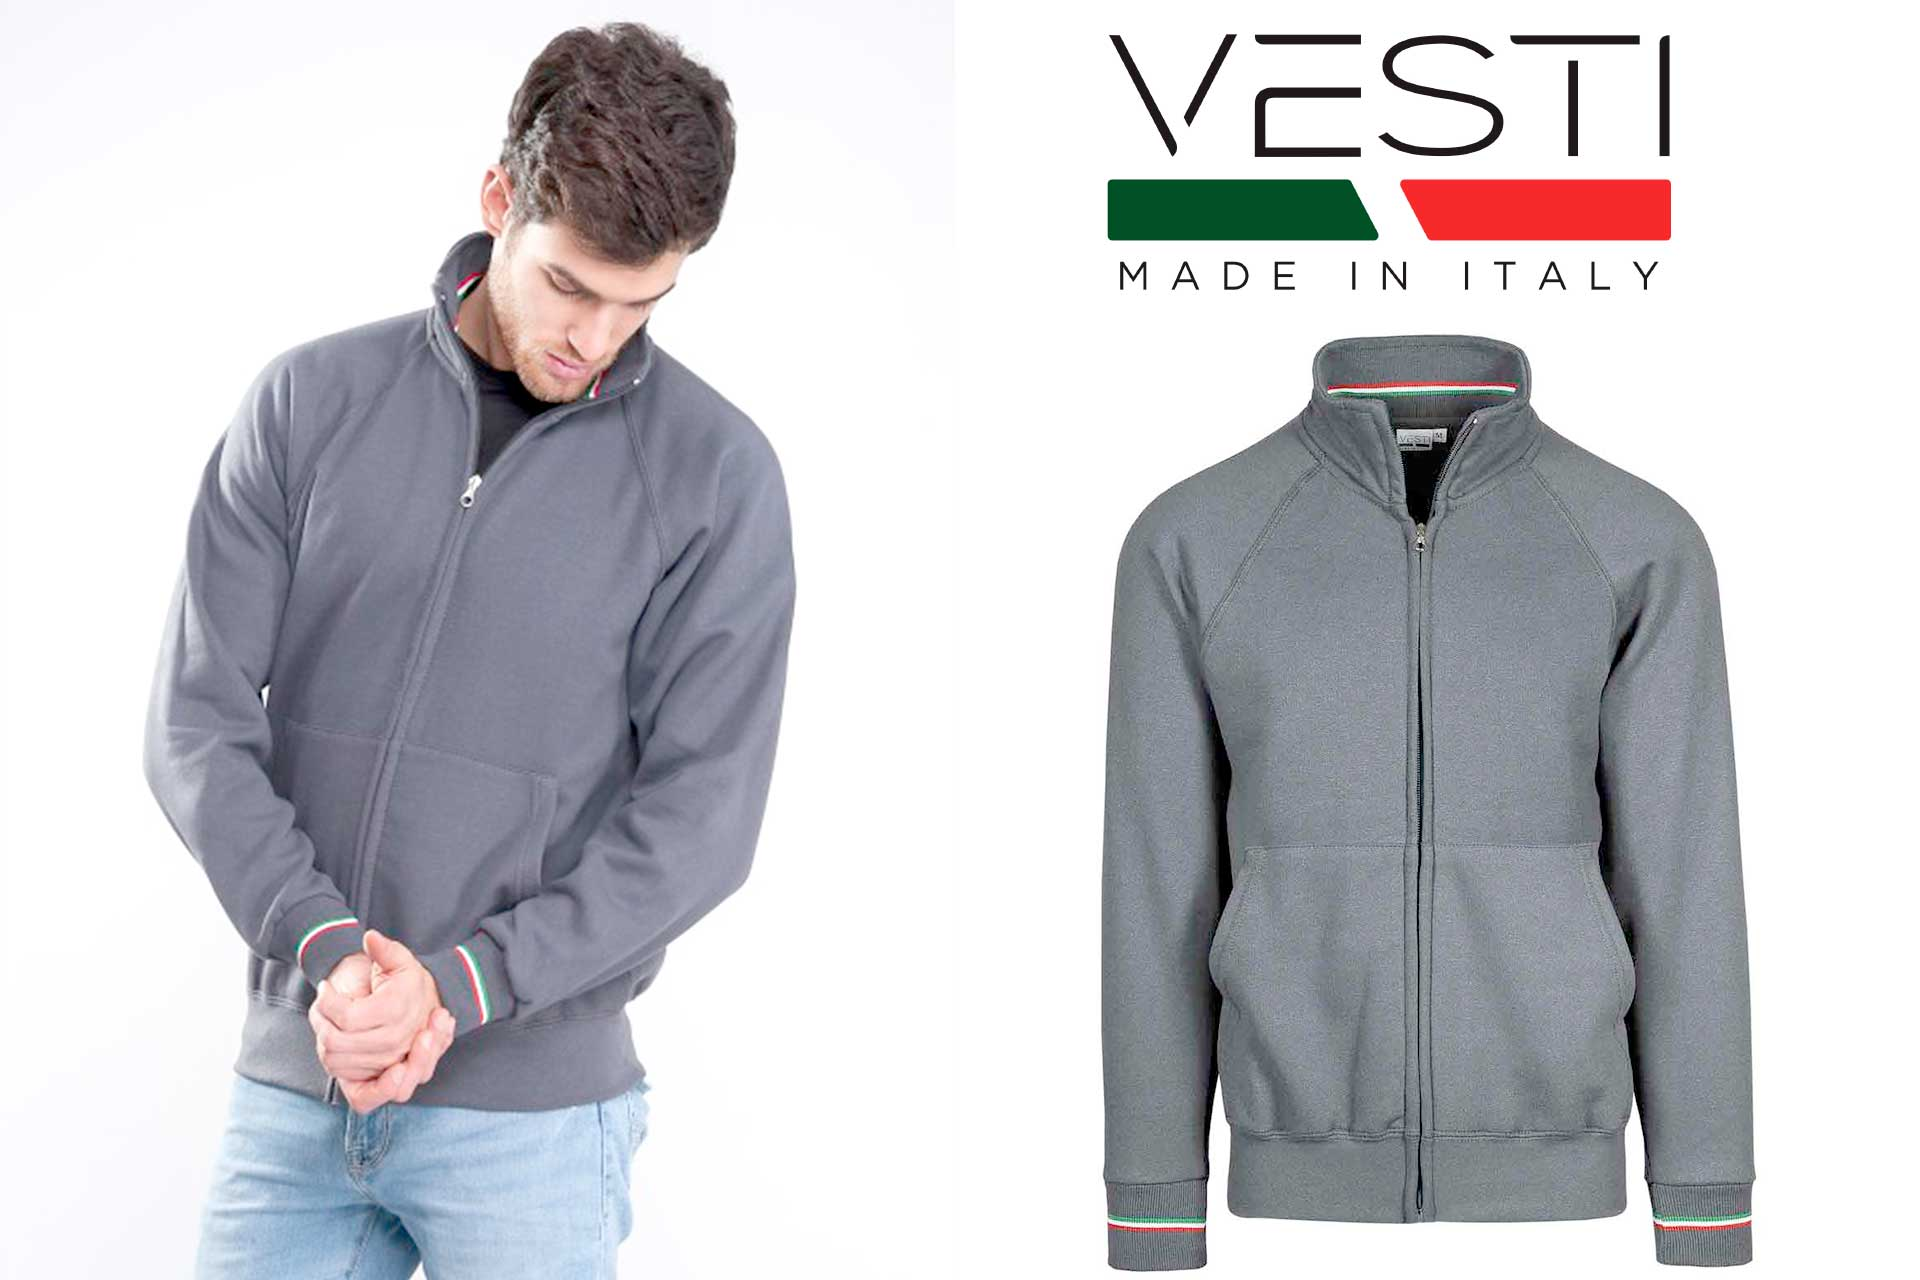 Felpa Vesti IT220 Grigia - Made in Italy - Stampata